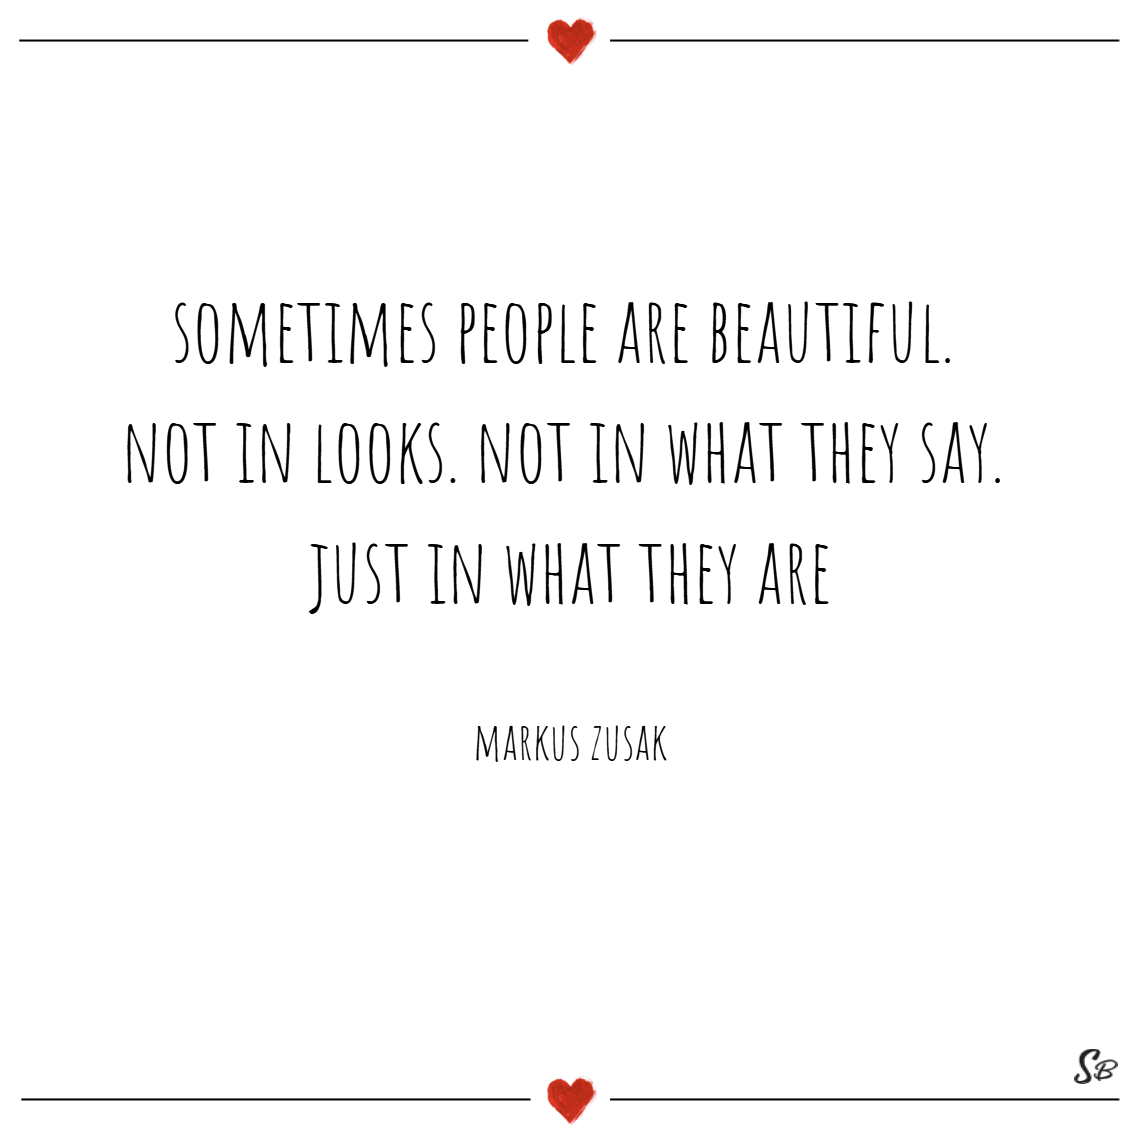 Sometimes people are beautiful. not in looks. not in what they say. just in what they are. – markus zusak